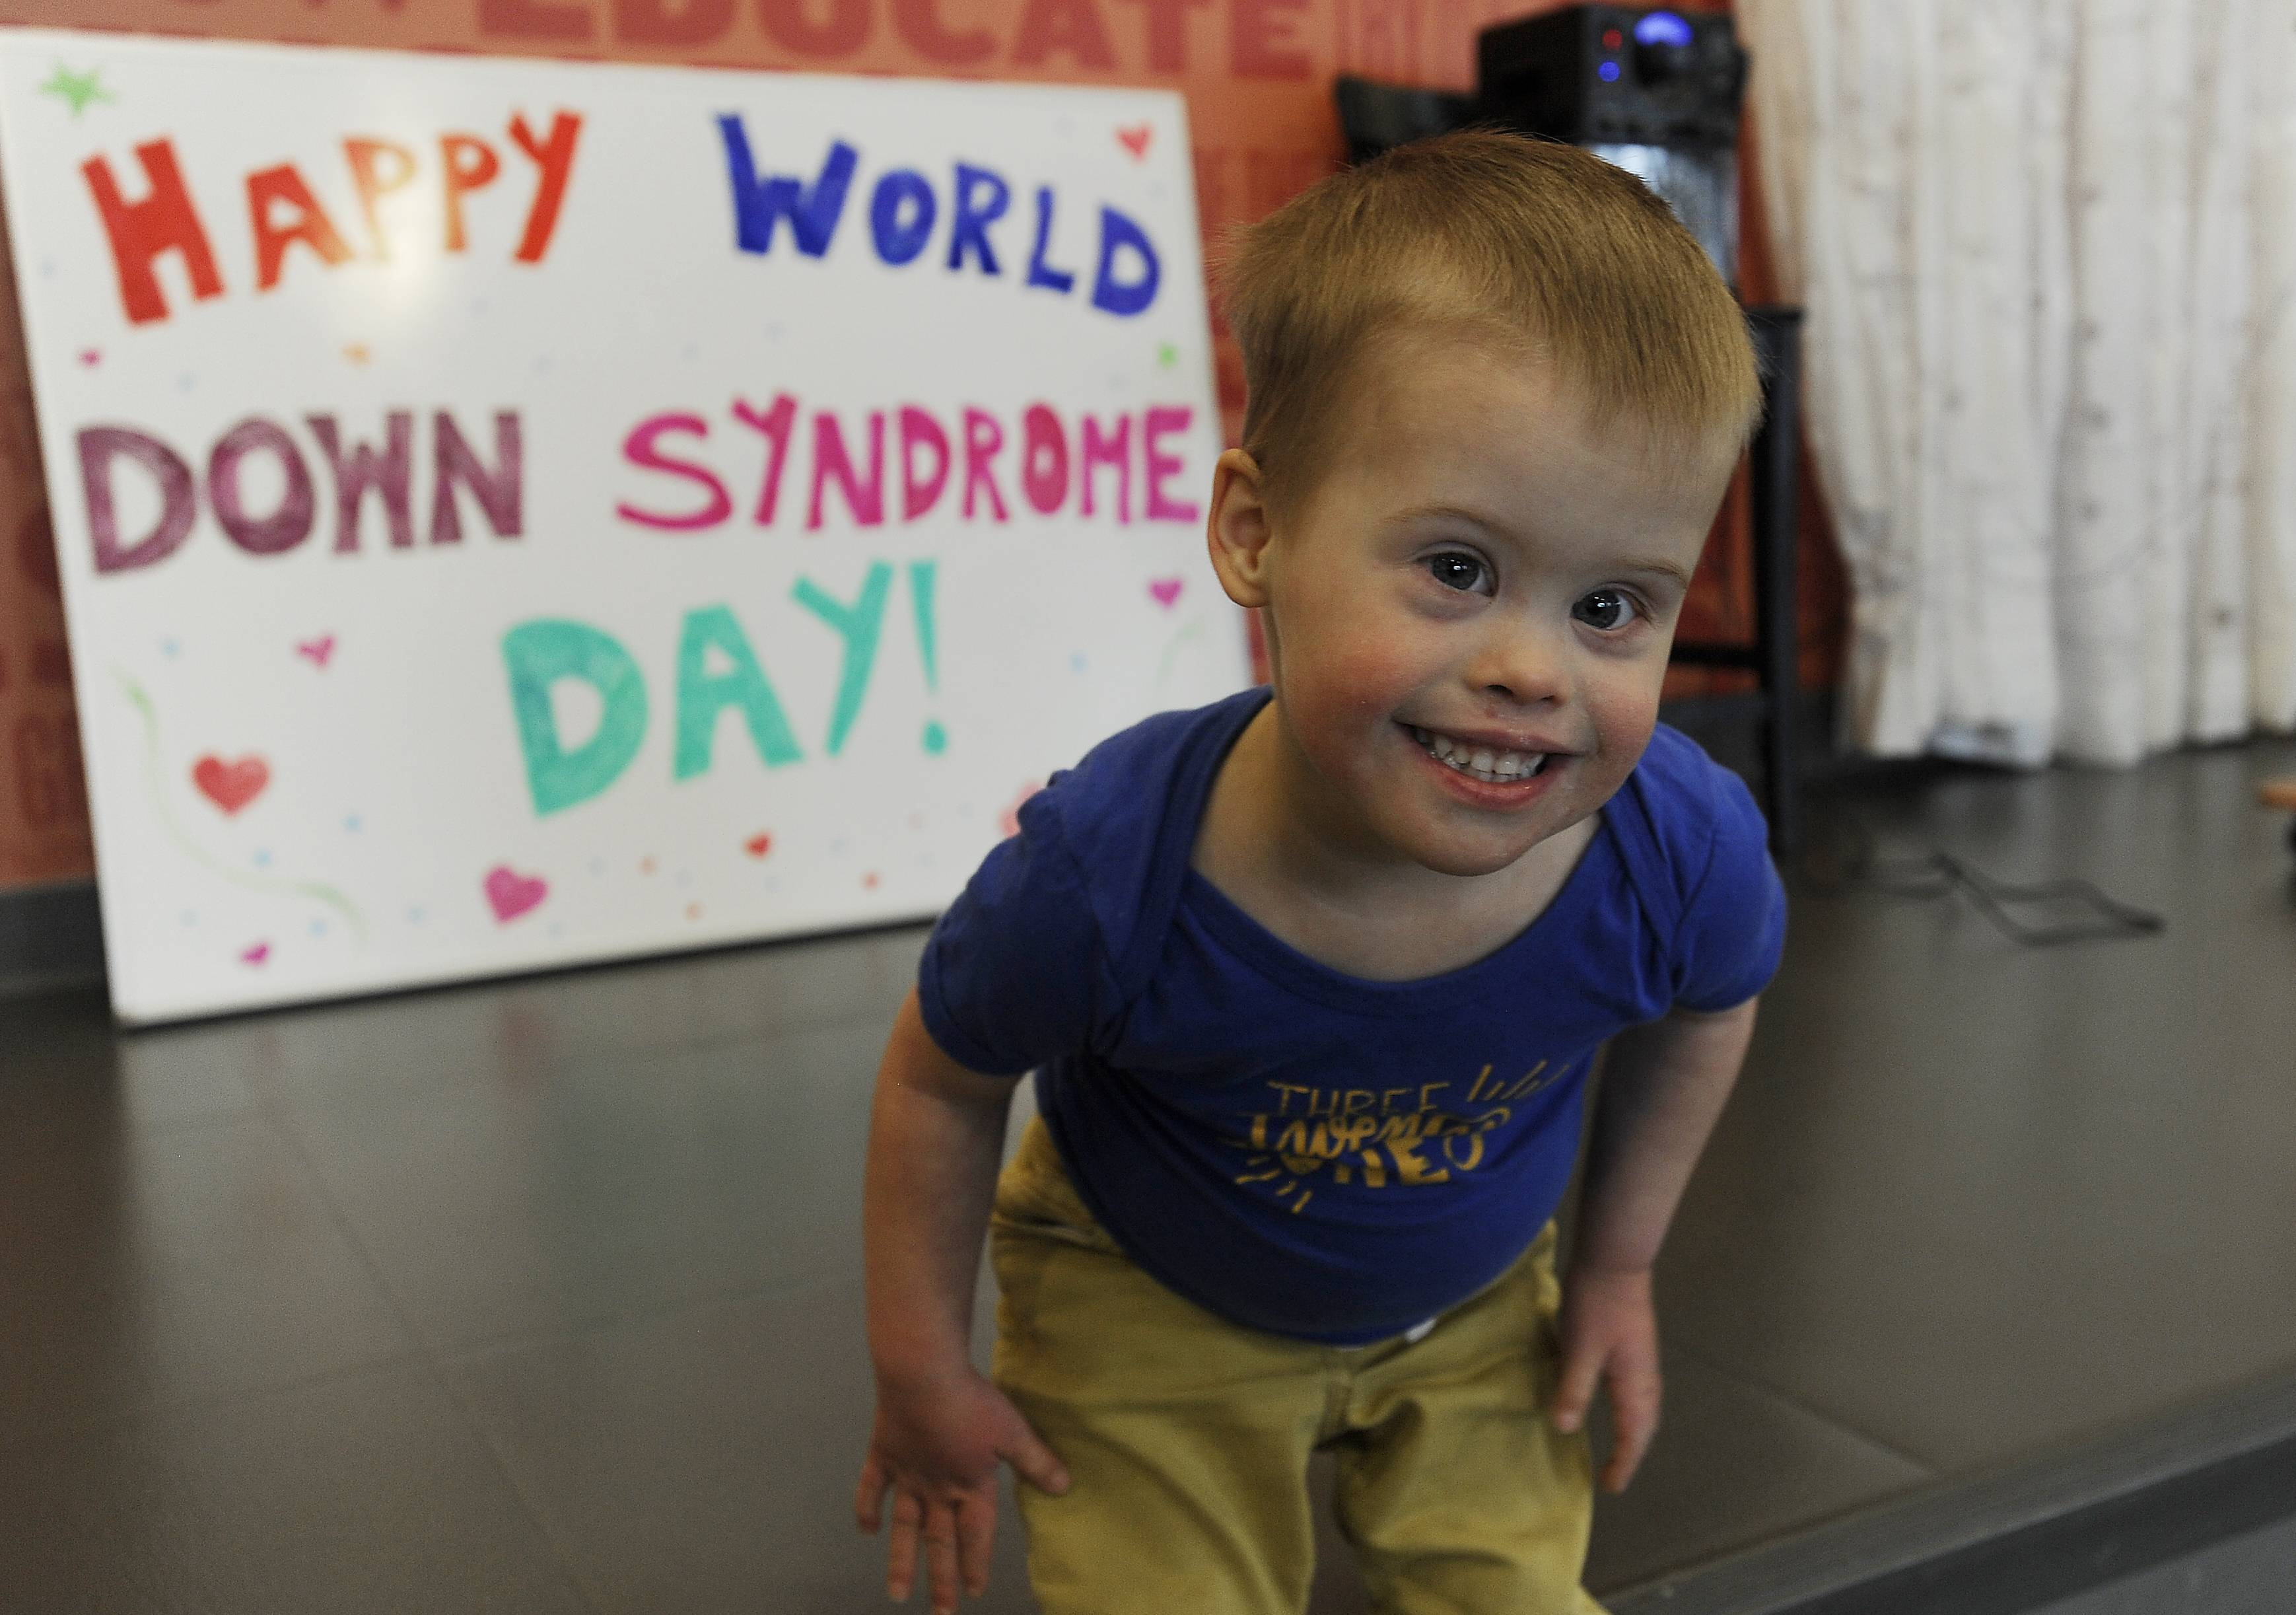 Cody Binger, 3, of Huntley dances to the music Thursday as he celebrates himself on World Down Syndrome Day at GiGi's Playhouse in Hoffman Estates.